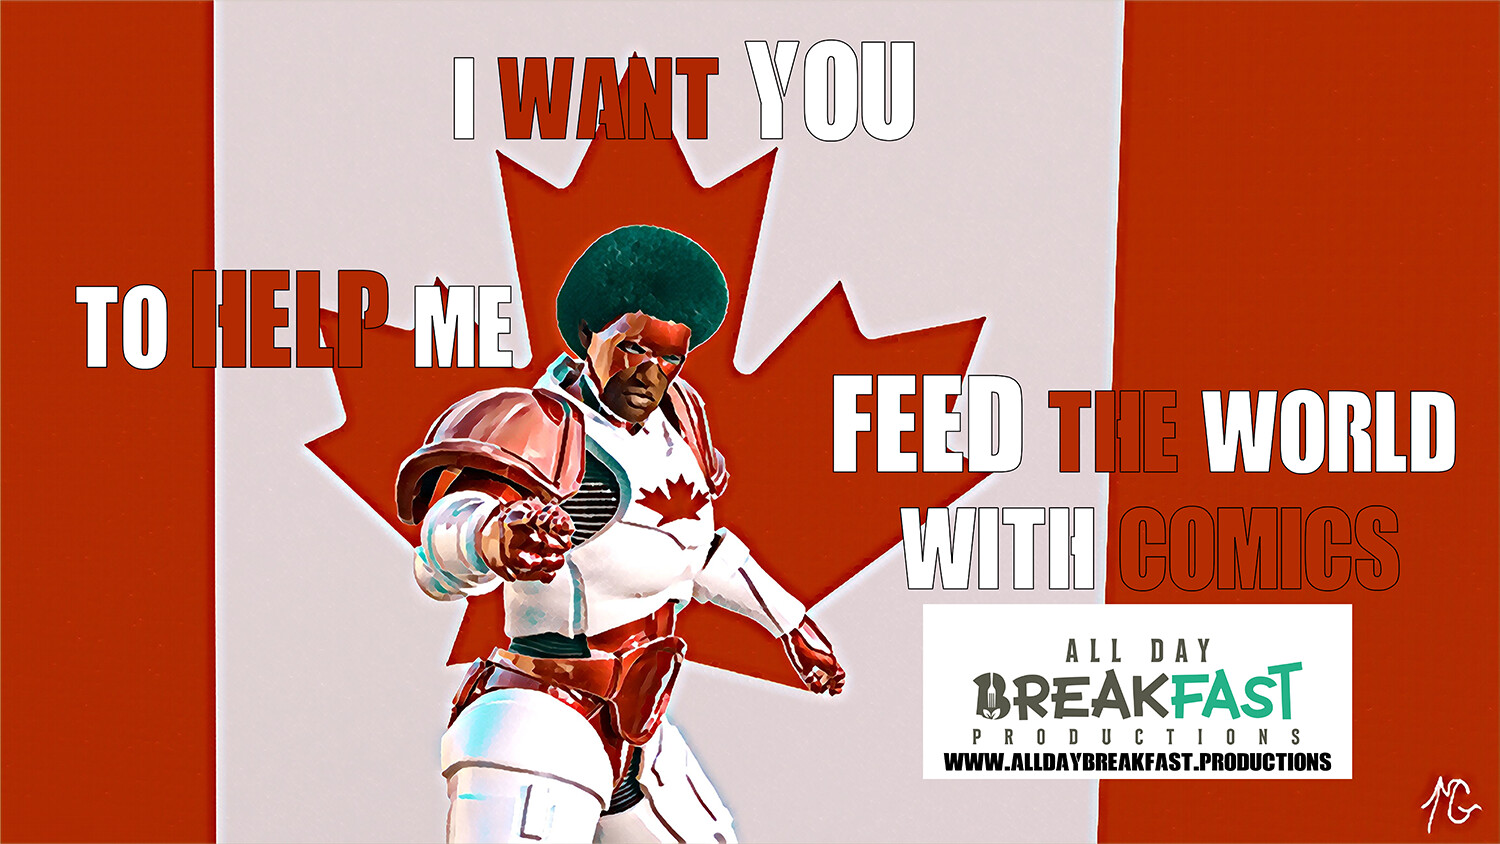 The Canadian Shield want YOU to help FEED THE WORLD